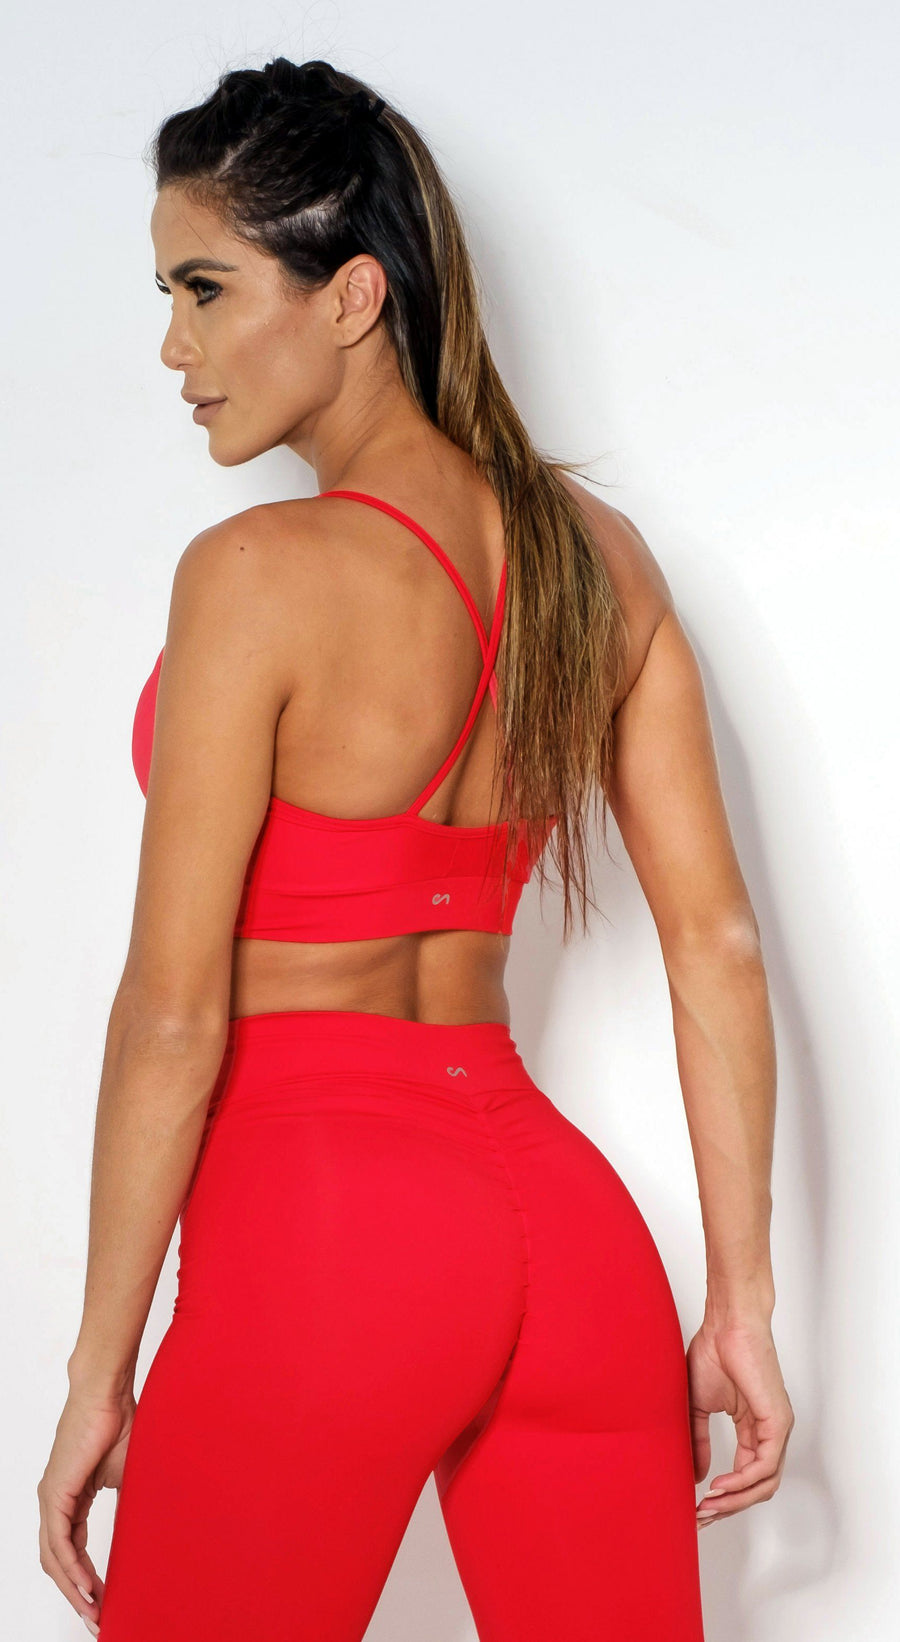 Brazilian Sports Bra - Strappy Hot Red